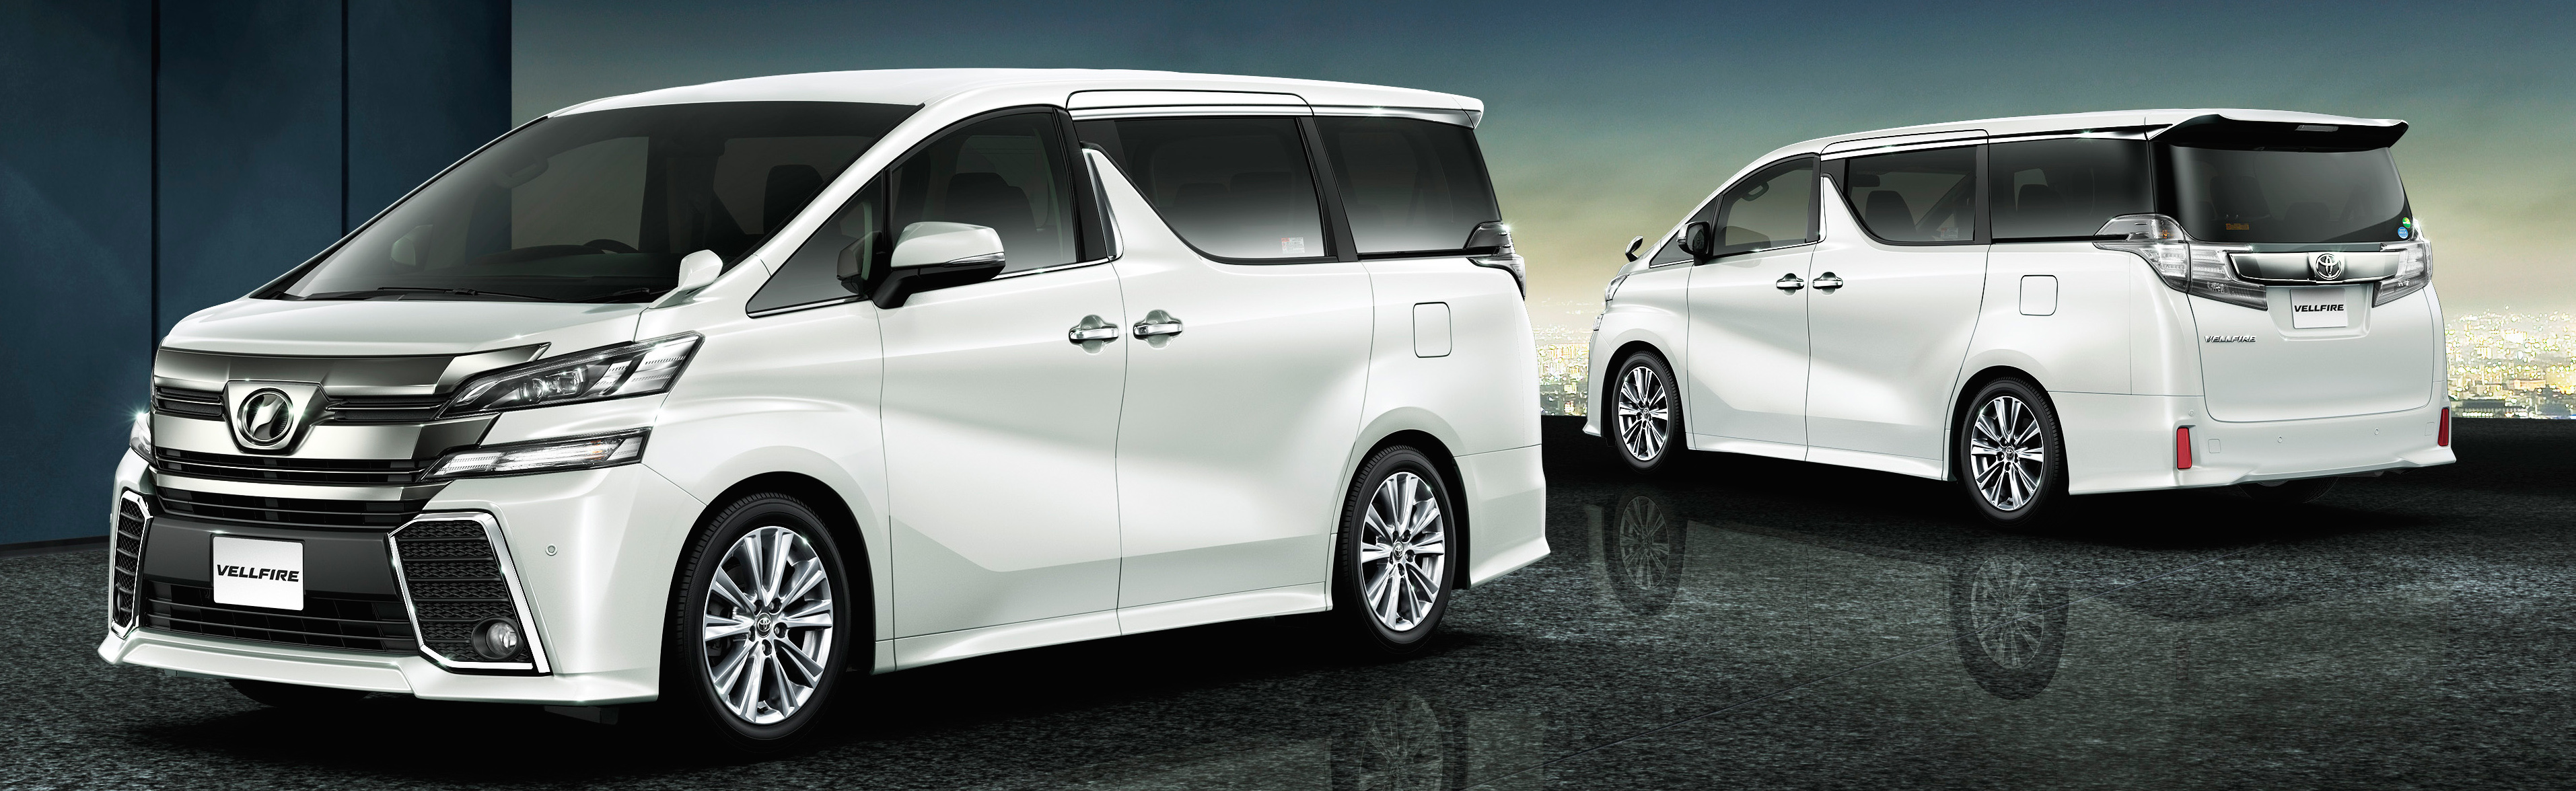 toyota all new alphard 2015 grand avanza limbung and vellfire unveiled  full details